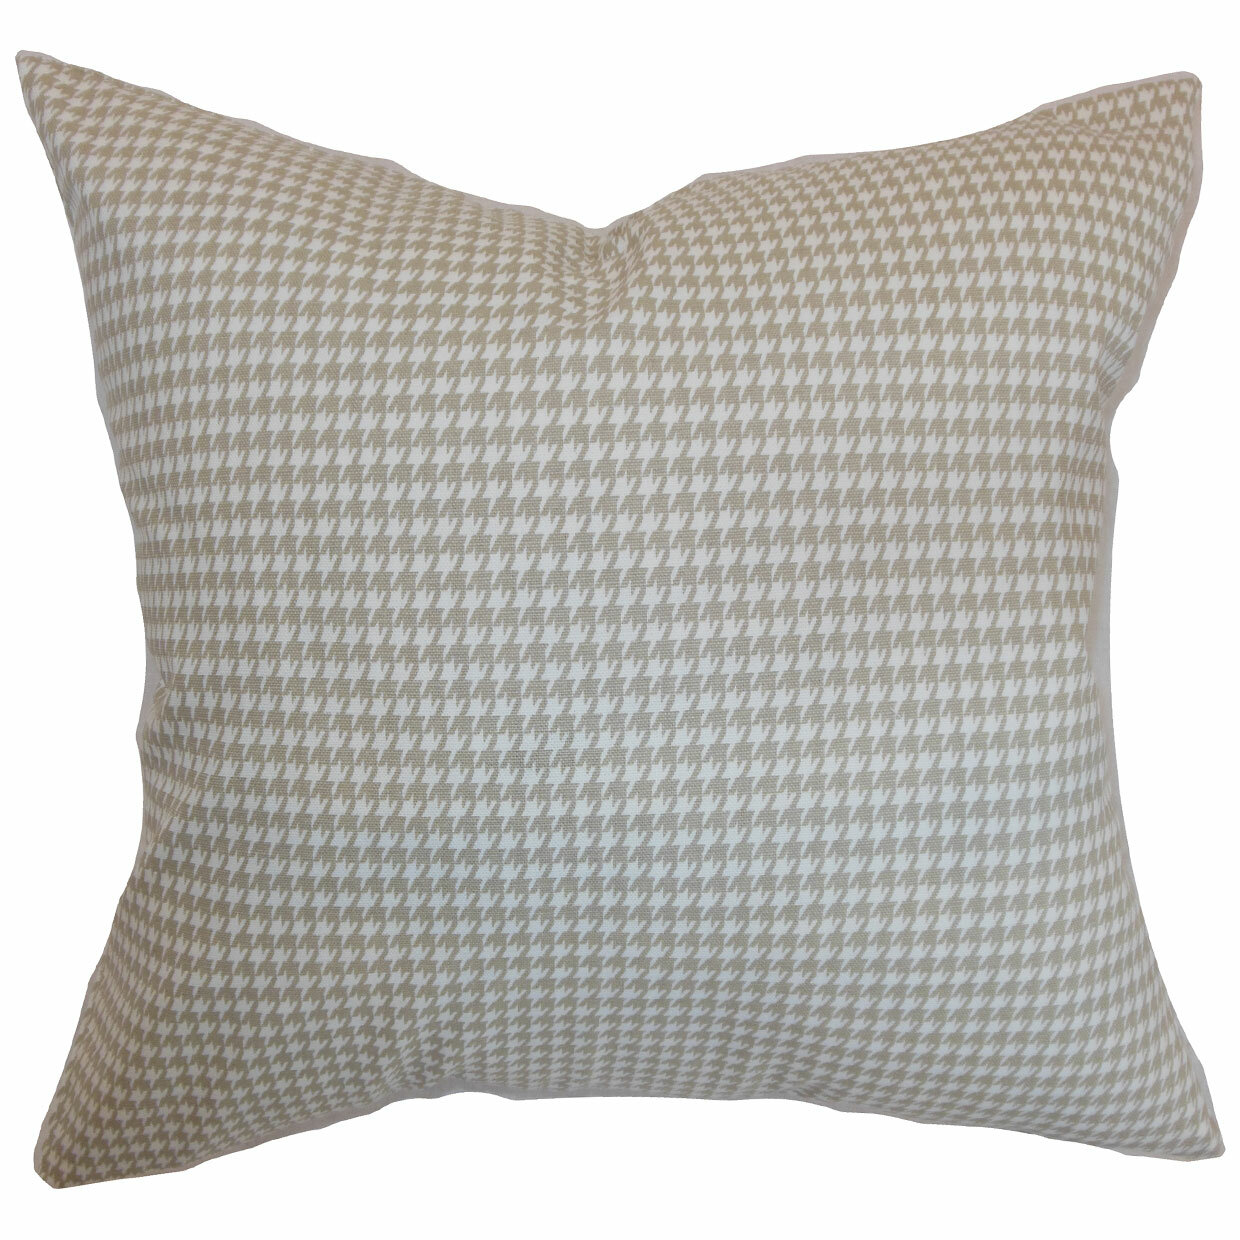 The Pillow Collection Indoor Use Only 100 Cotton Pillow Cover Insert Reviews Wayfair